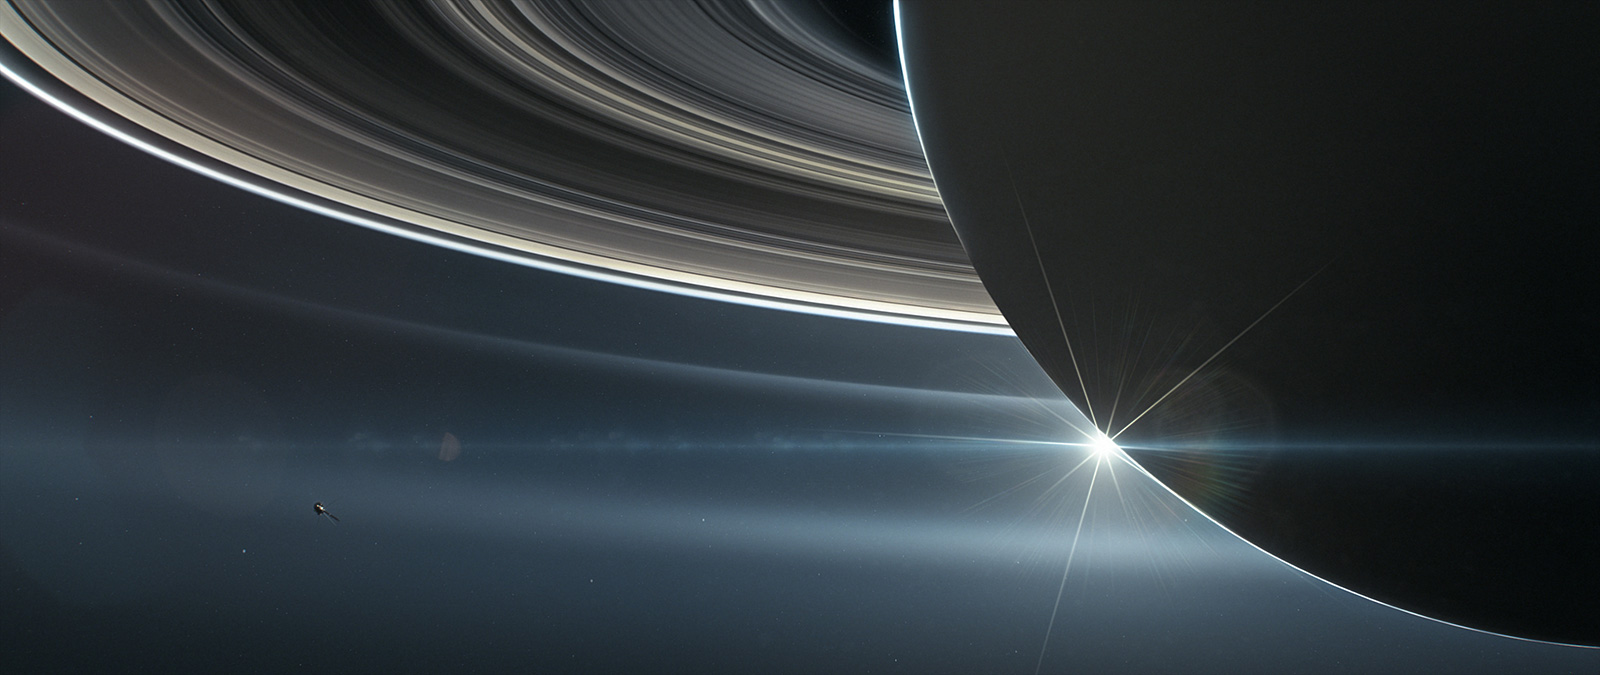 A View of the Rings of Saturn